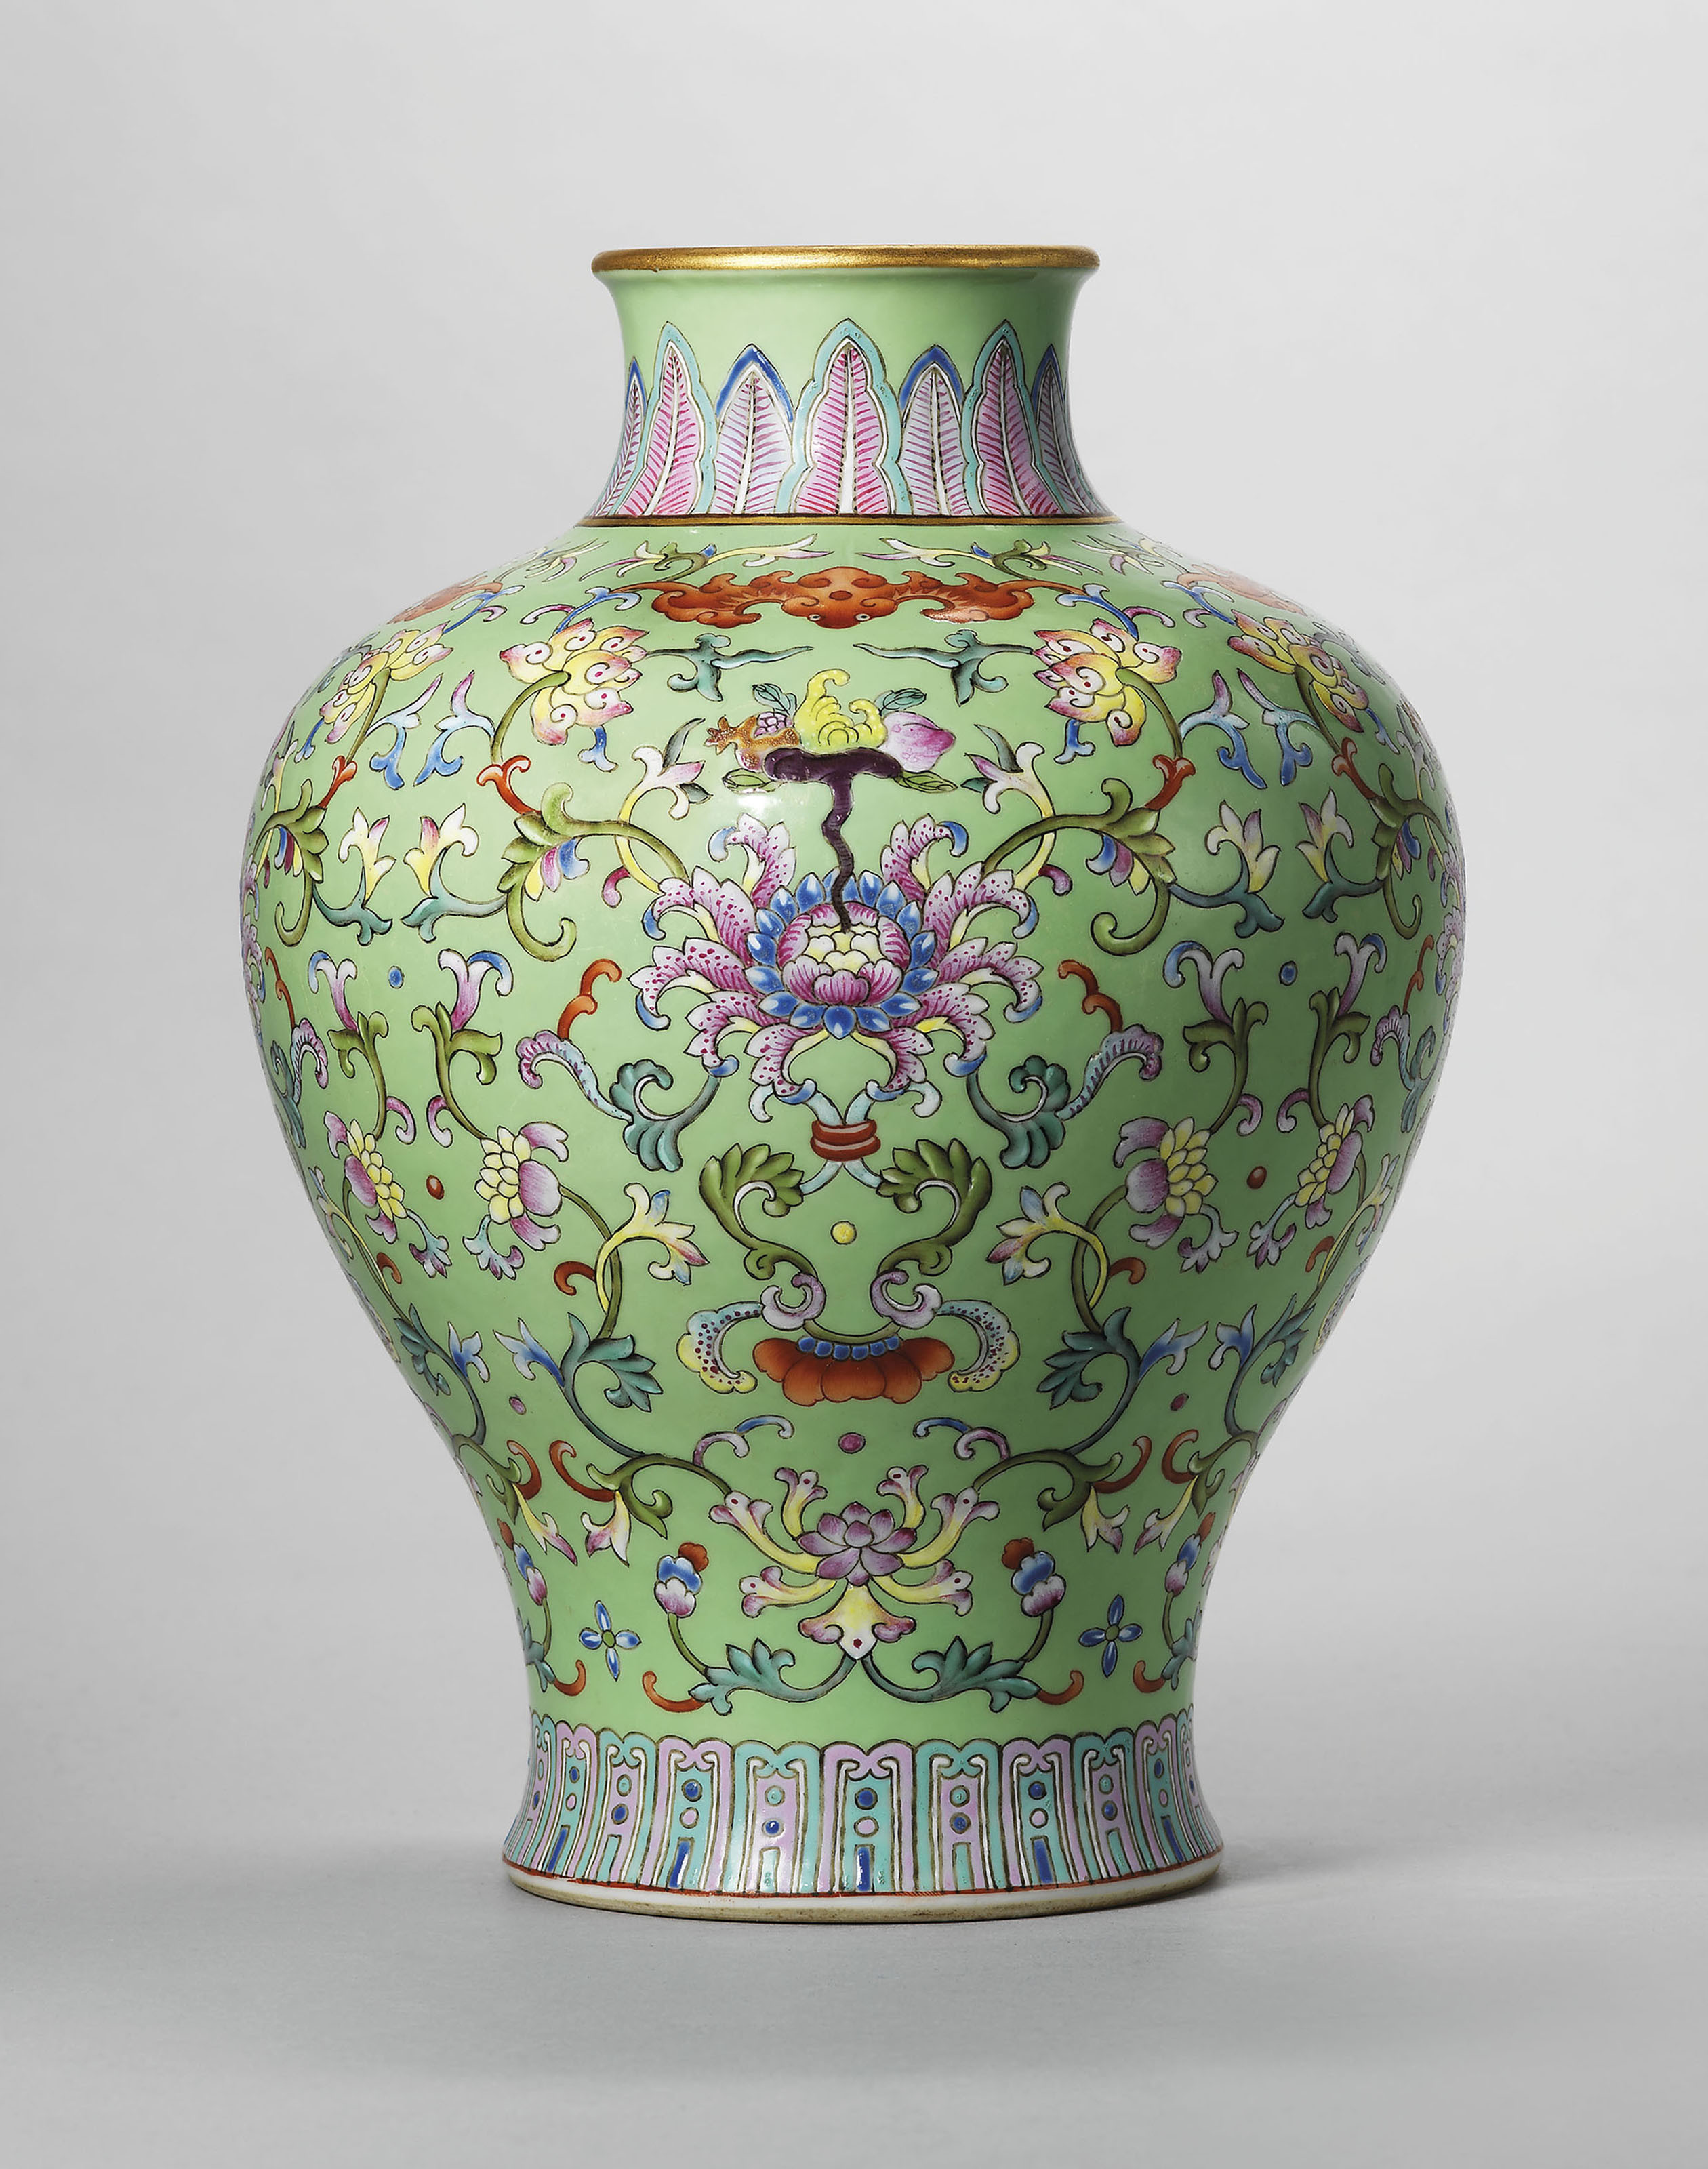 chinese flower vase porcelain of a guide to the symbolism of flowers on chinese ceramics christies inside a lime green ground famille rose vase meiping qianlong six character seal